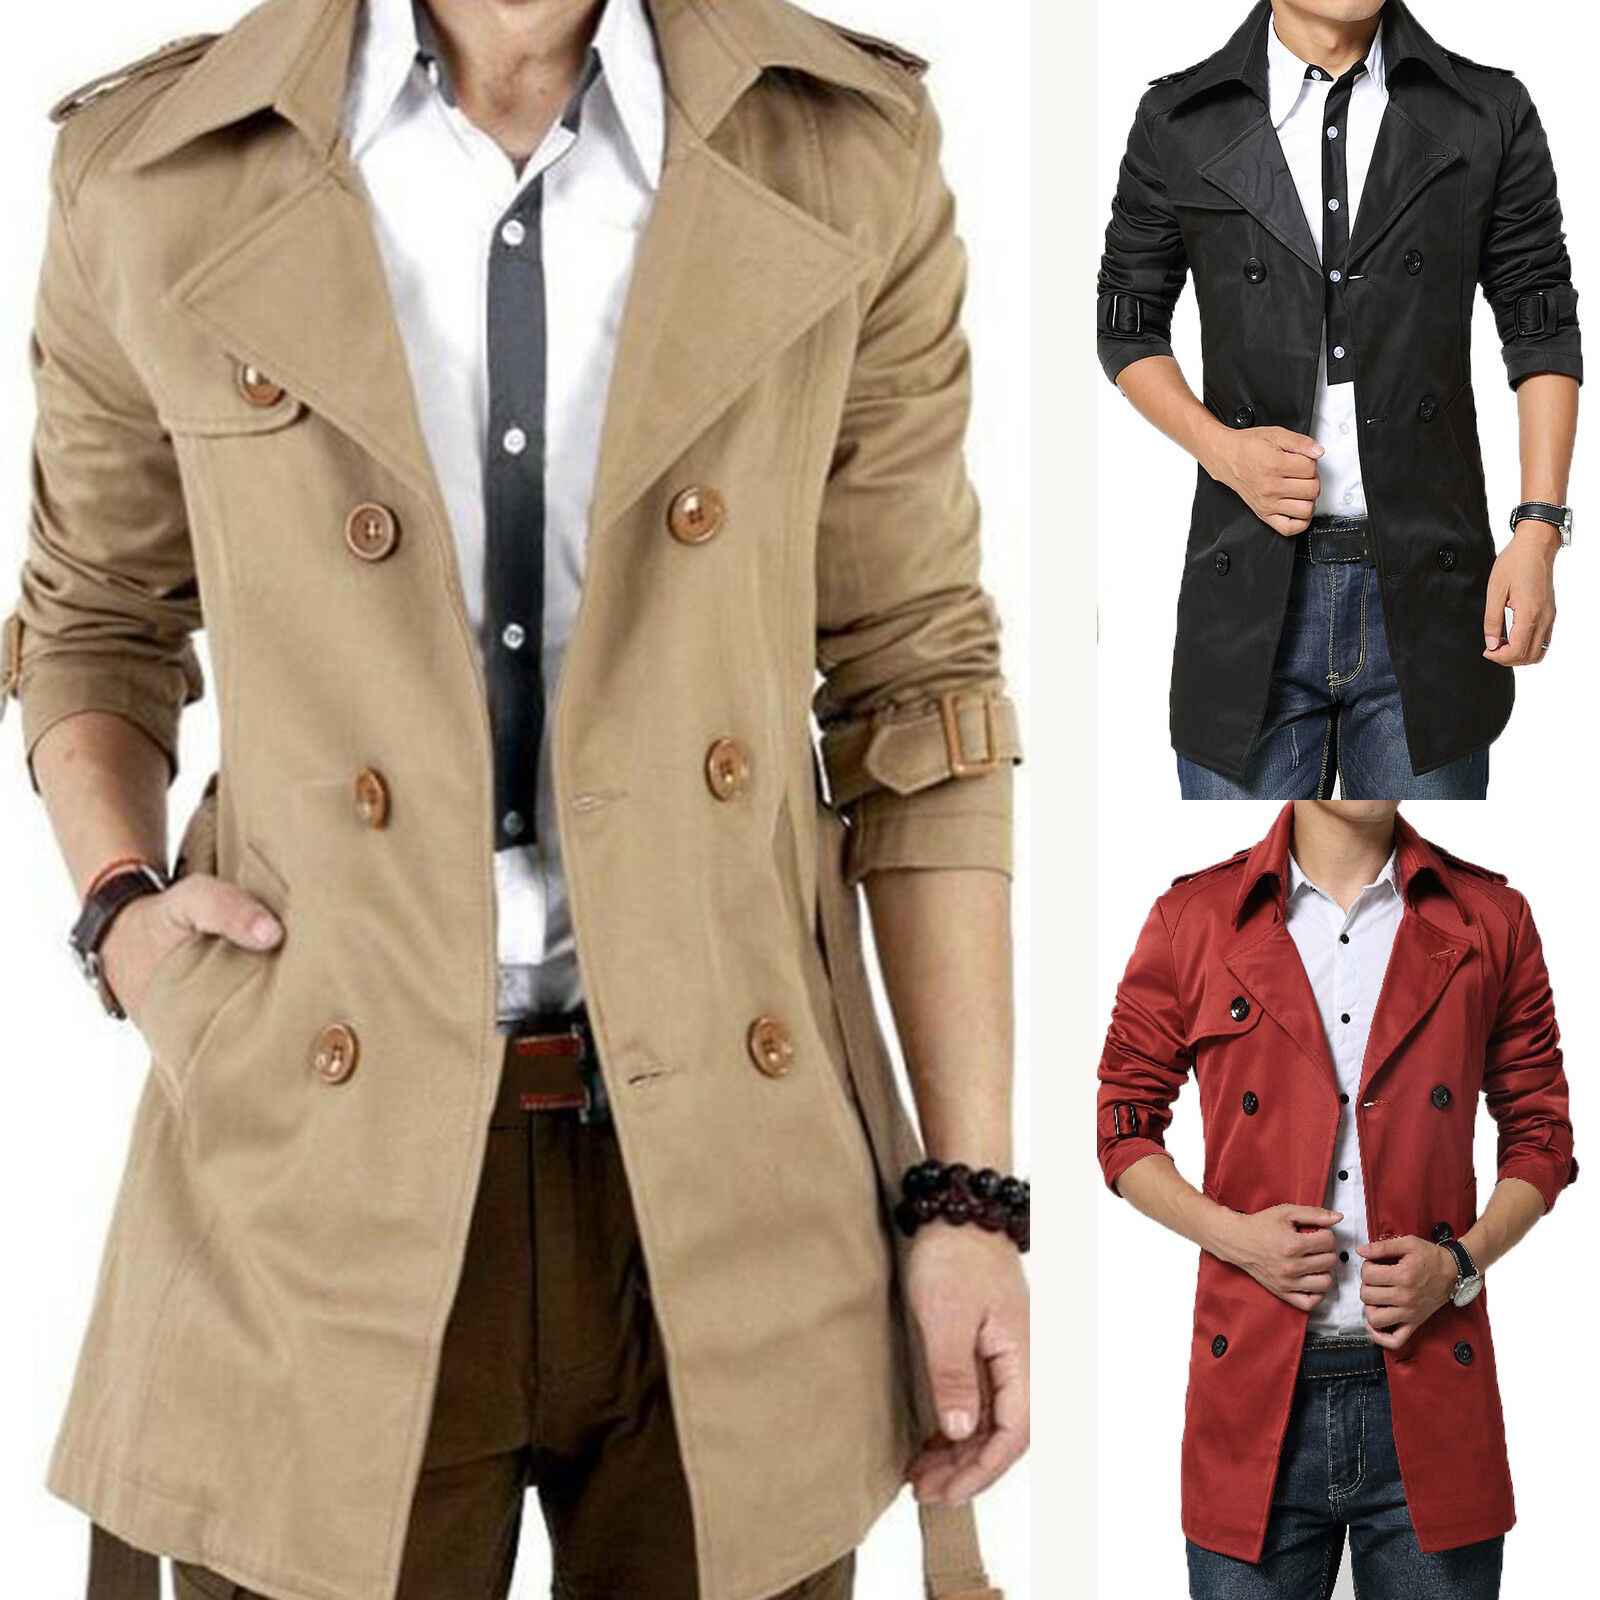 Mens Winter Trench Coat Double Breasted Outwear Peacoat Overcoat Long Jacket Top